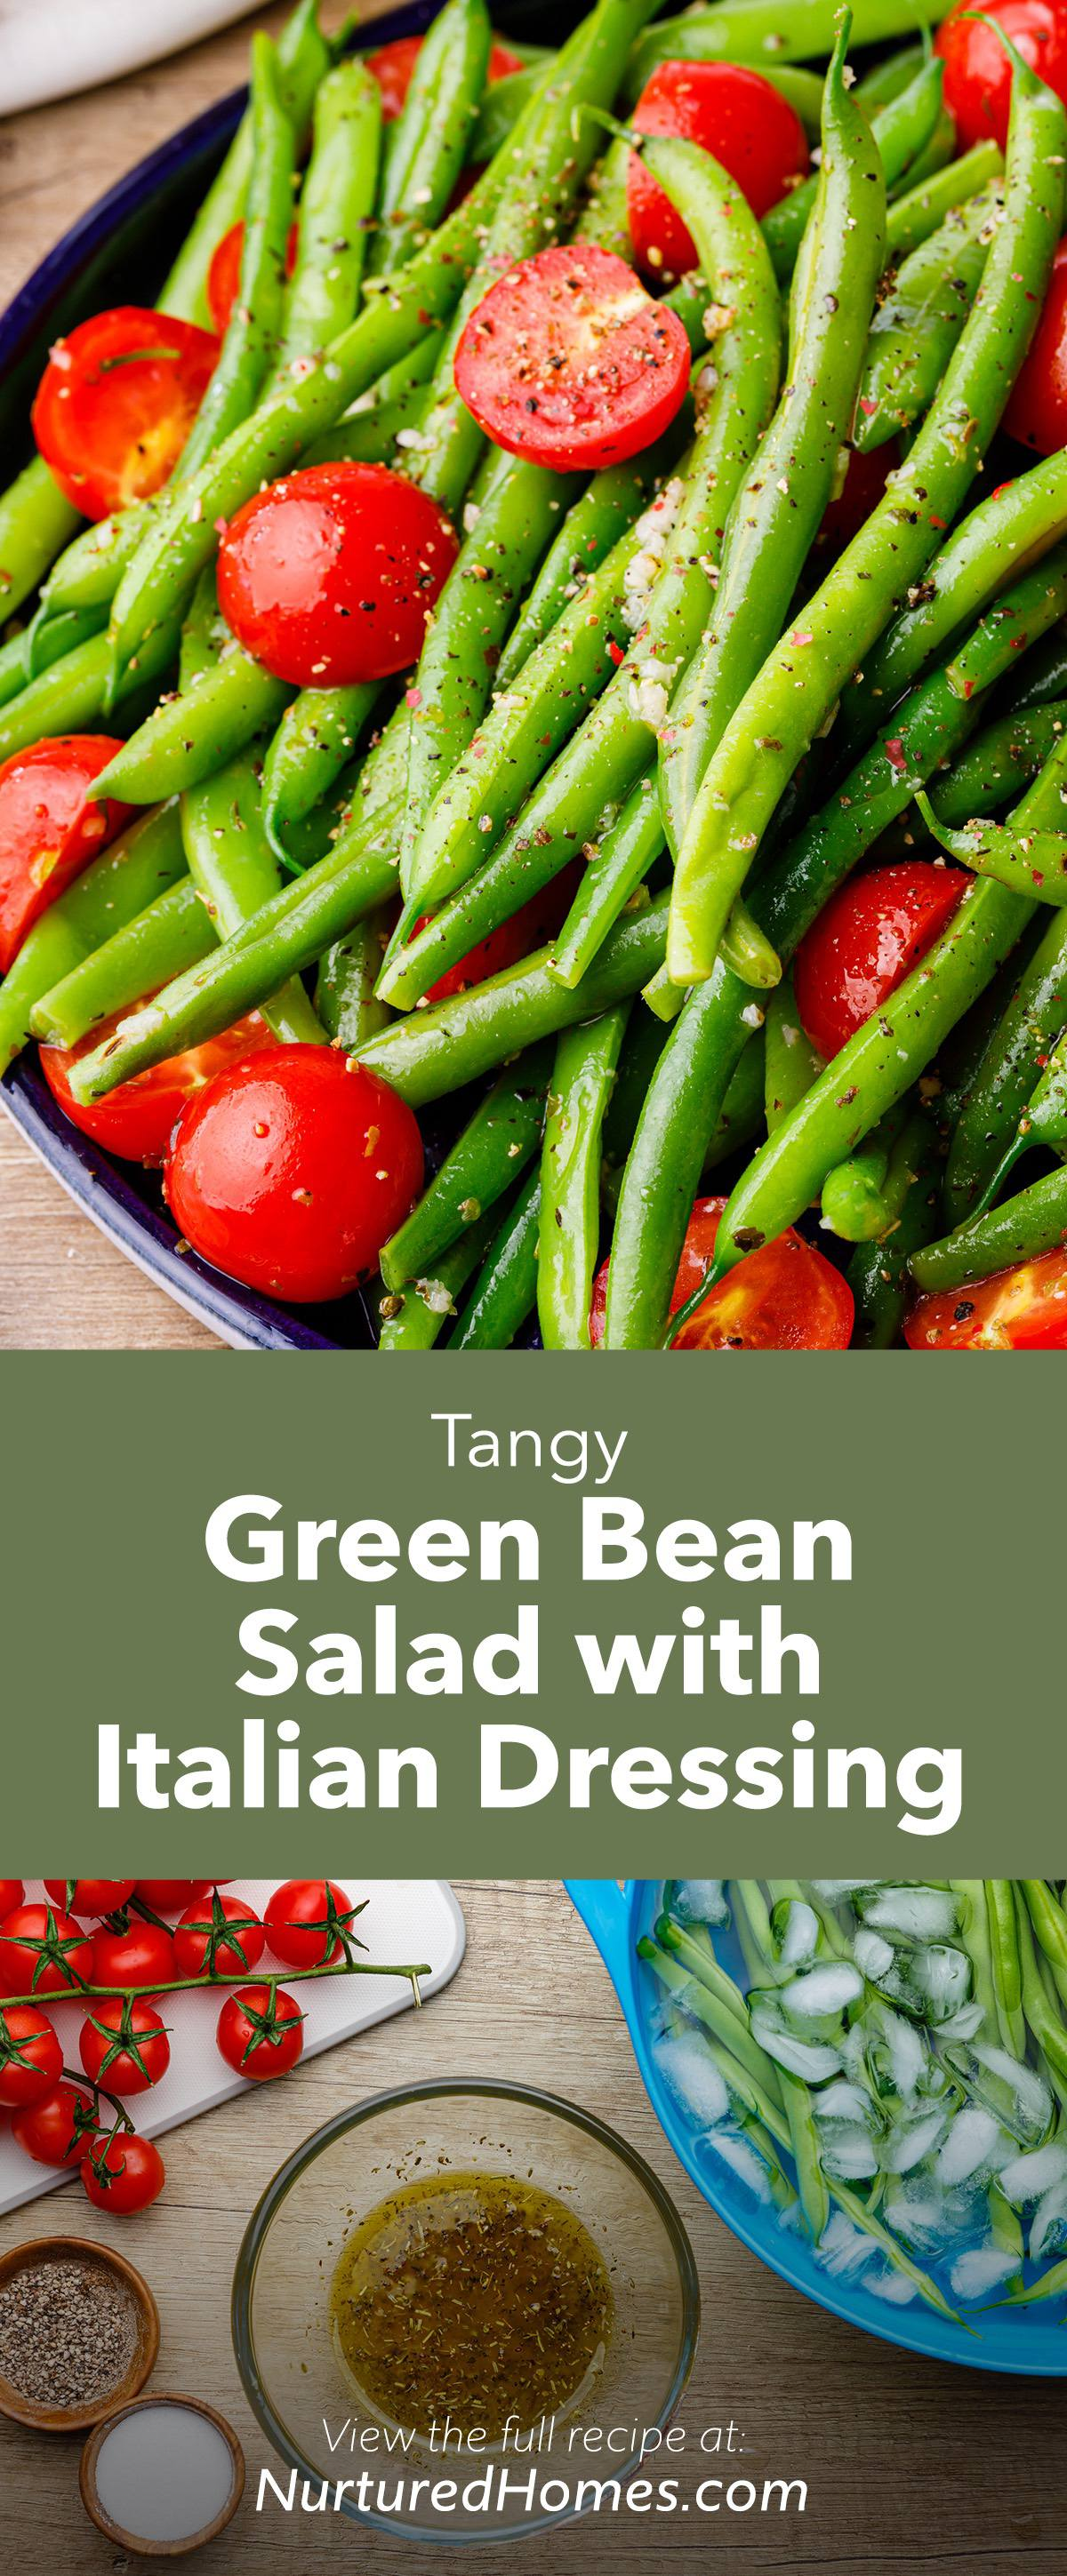 Tangy Green Bean Salad with Homemade Italian Dressing